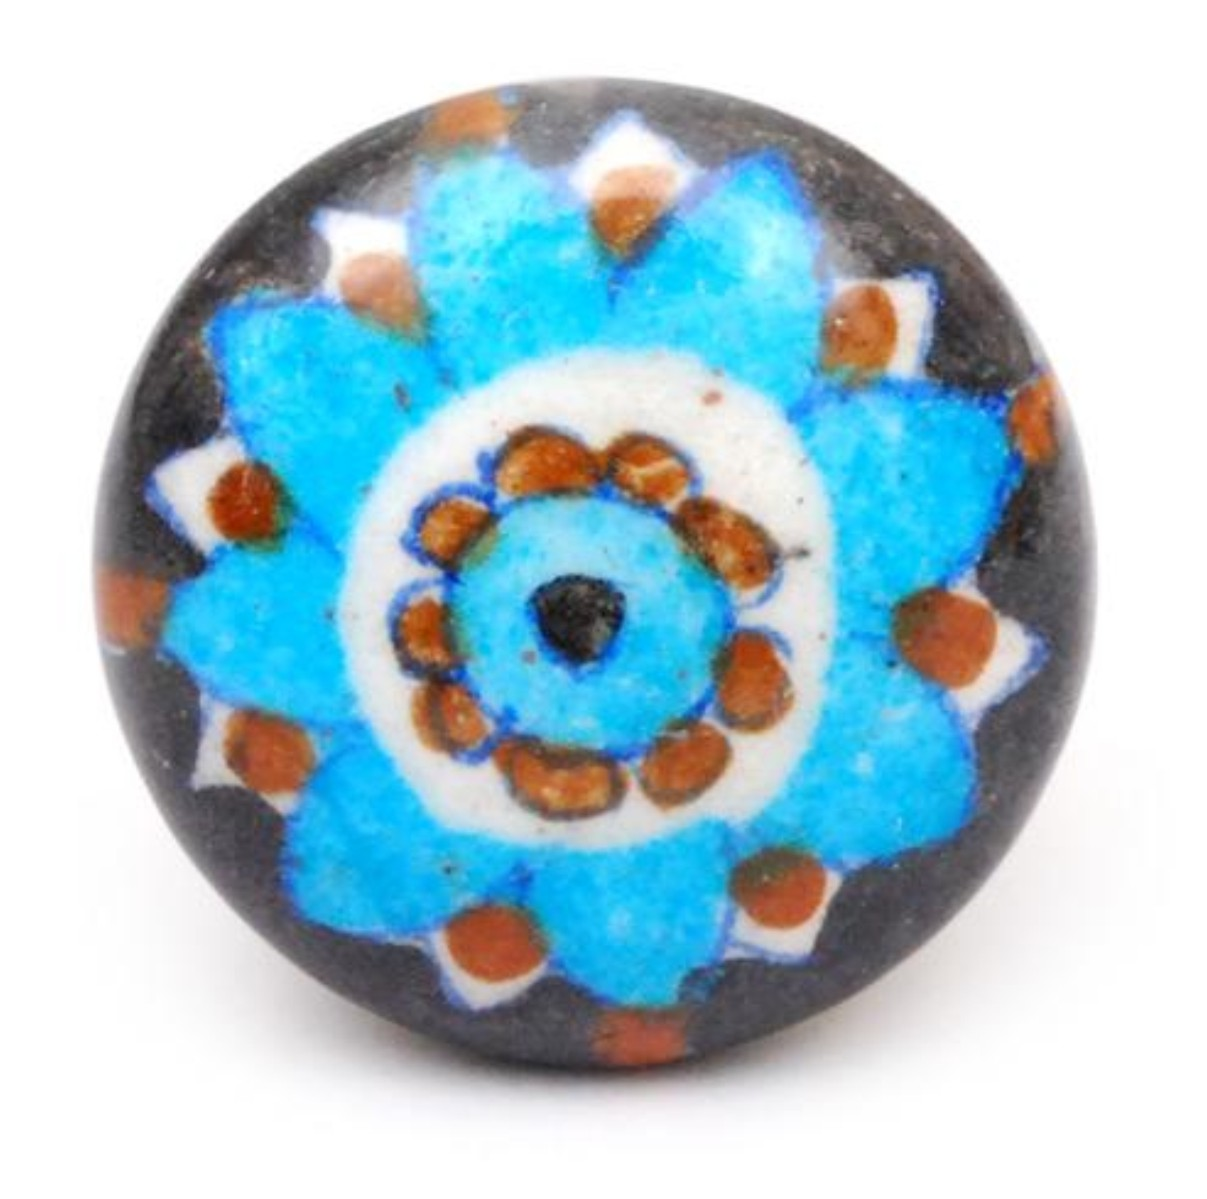 Black, Brown, White And Turquoise Ceramic Cabinet Knob